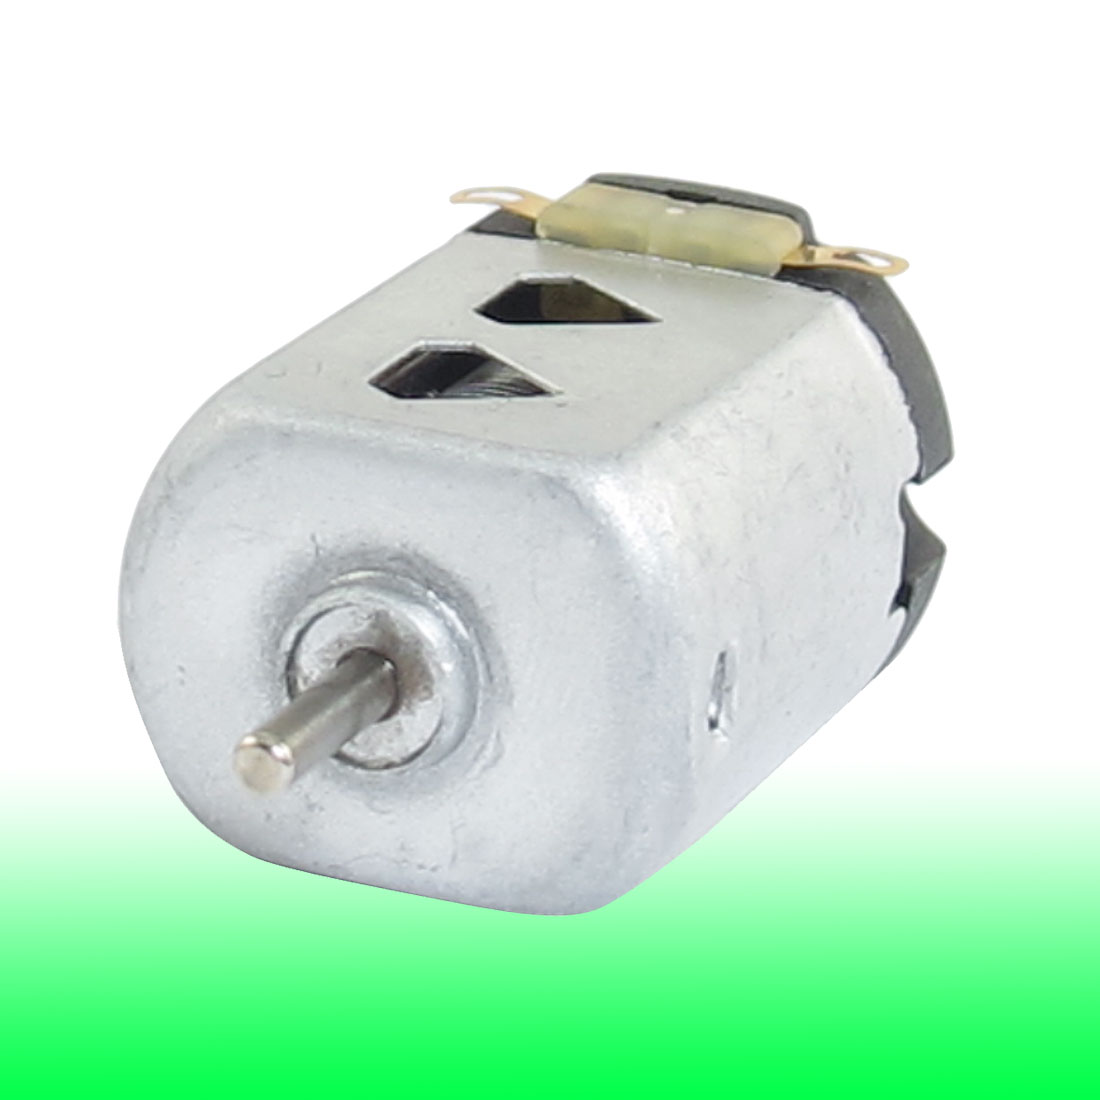 Shaft Diameter 2mm DC 1.5V 9000RPM Silver Tone Flat Electric 130 Motor for Four-wheel Car 27mm x 20mm x 15mm (L*W*T)